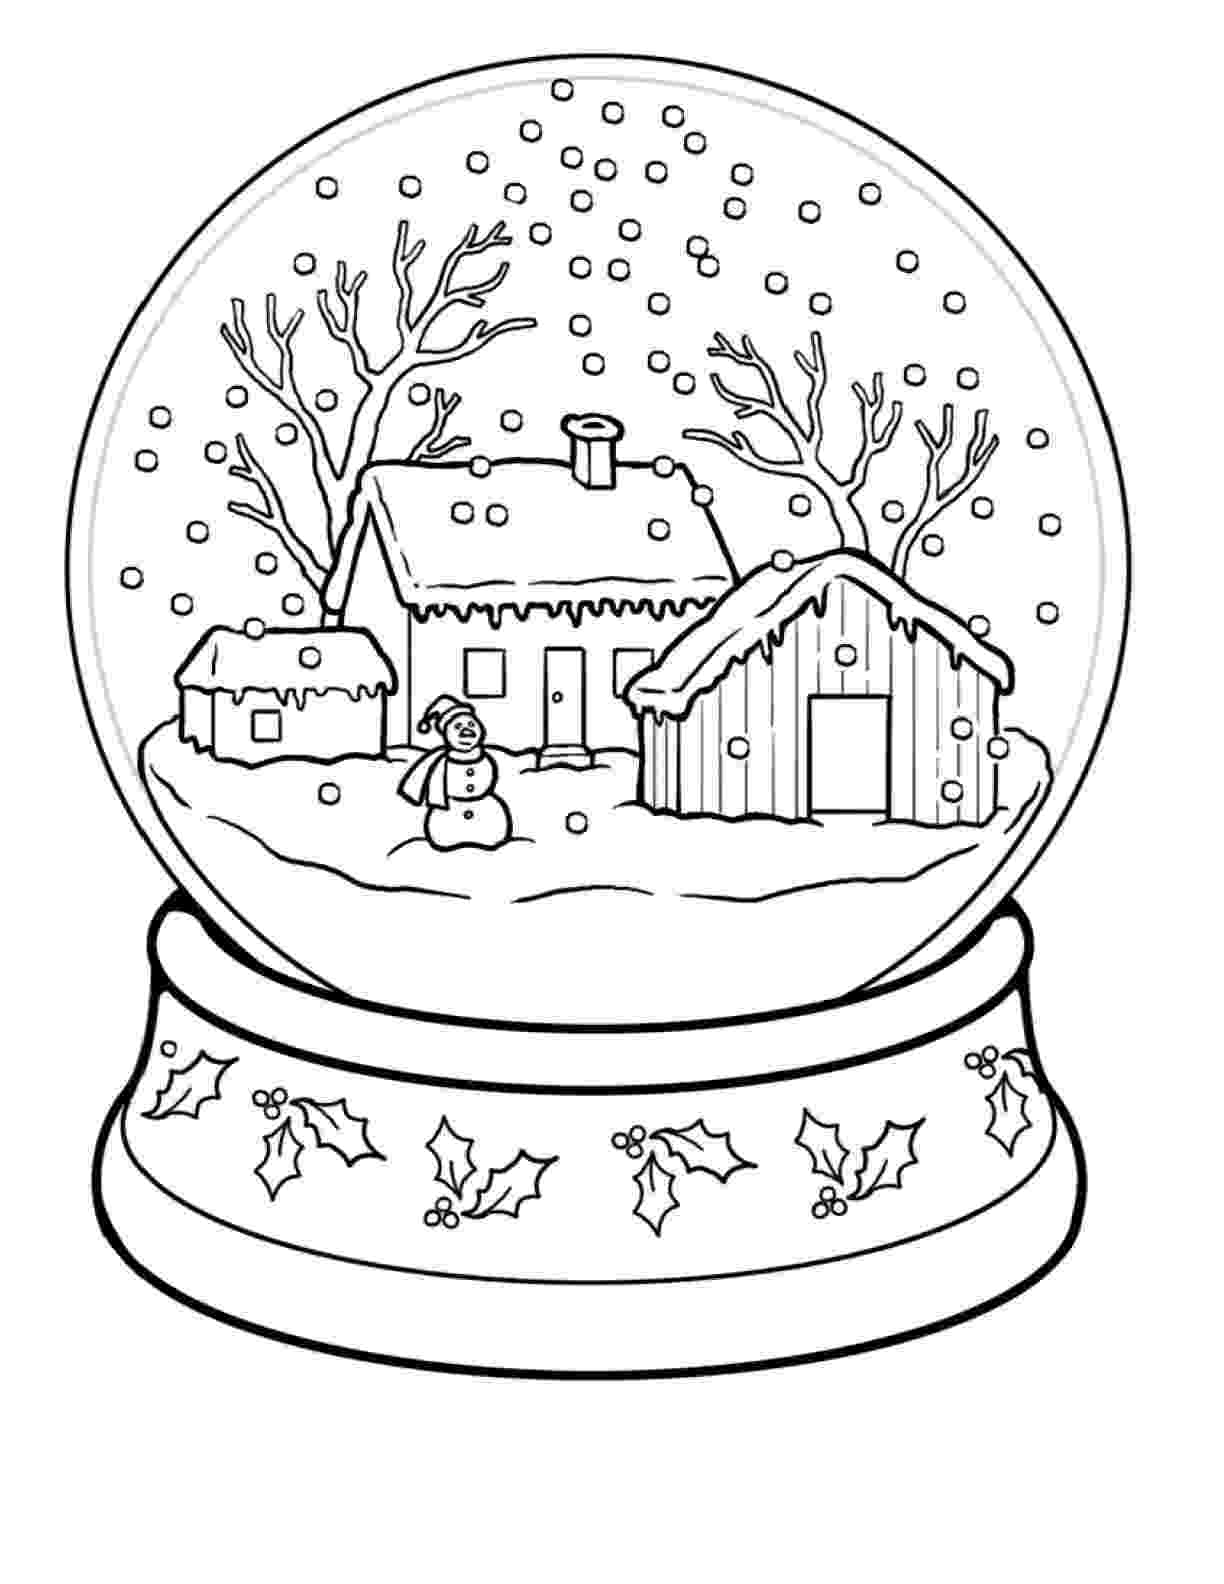 winter printable coloring pages free free printable winter coloring pages for kids coloring free pages printable winter